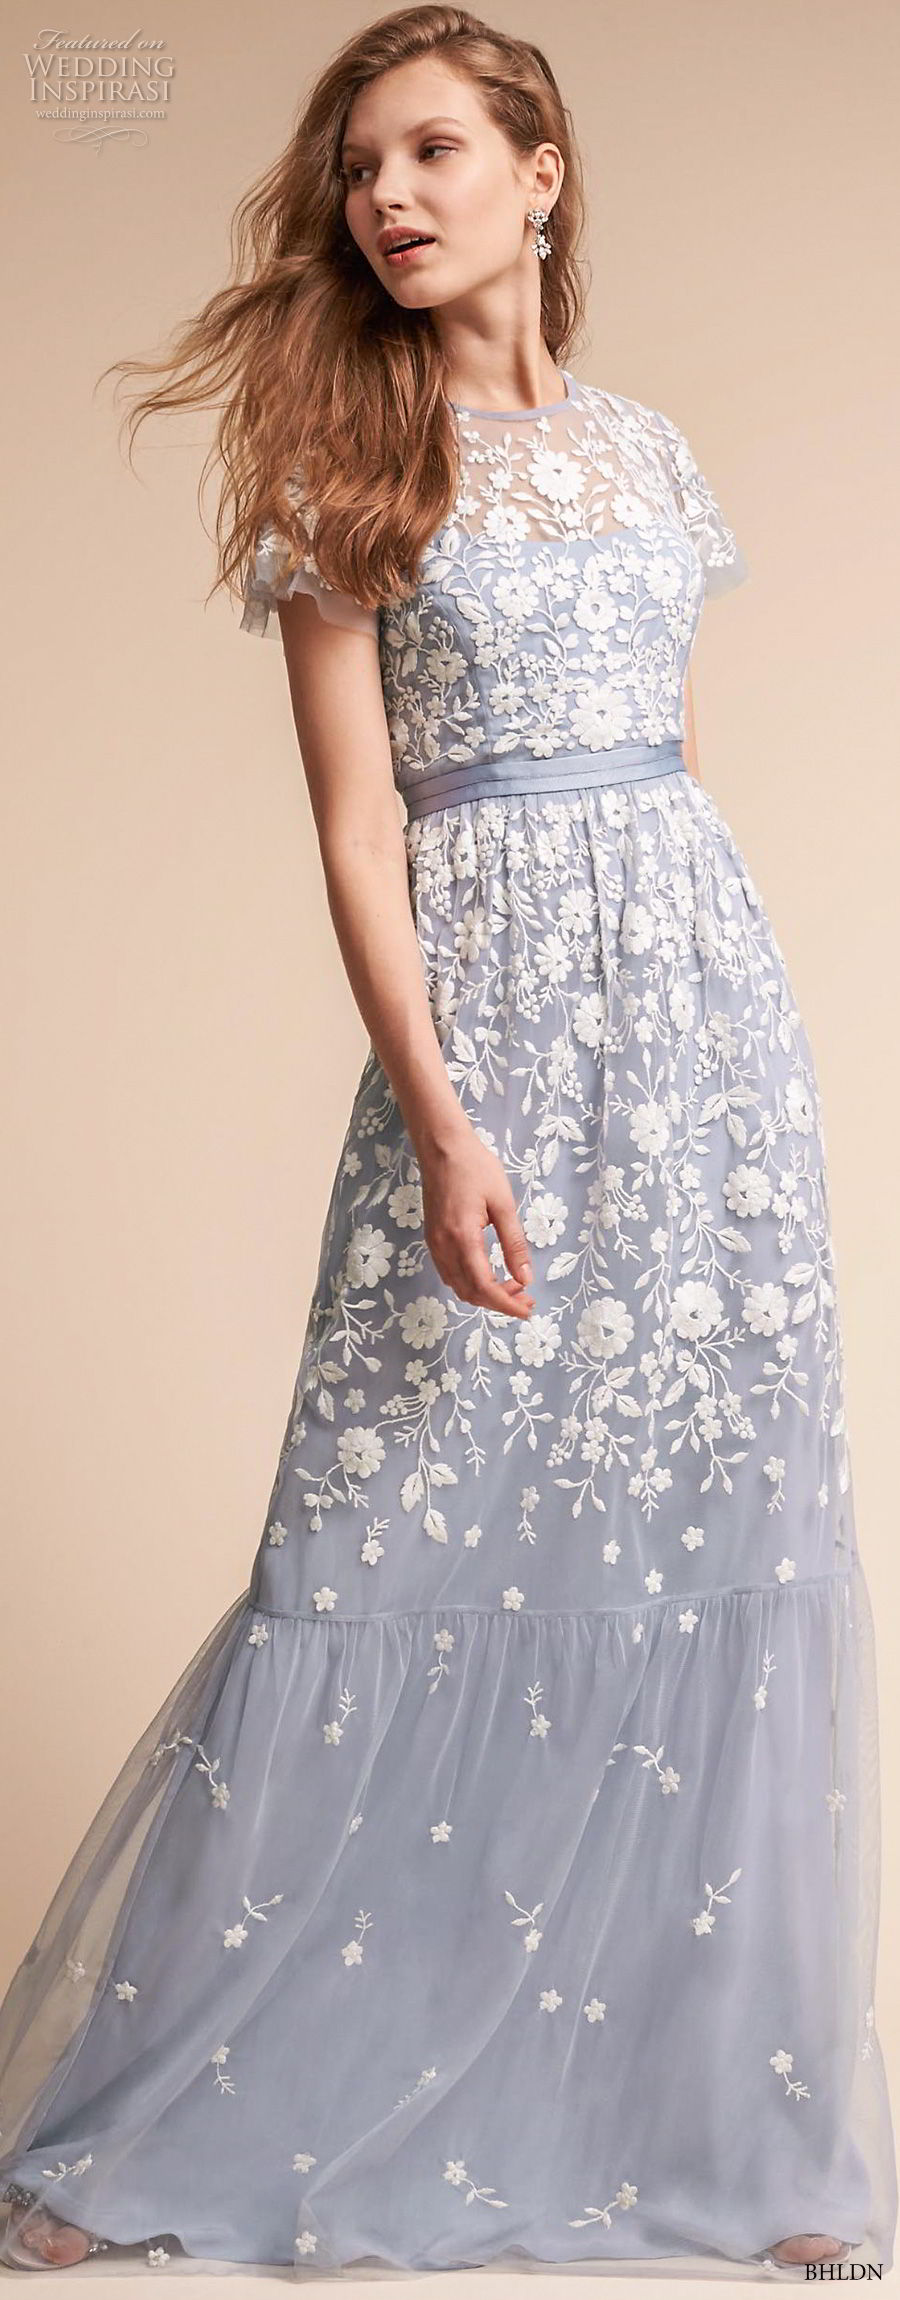 bhldn fall 2017  americana bridal short sleeves jewel neck full embellishment romantic blue color soft a  line wedding dress covered lace back sweep train (meadow) mv